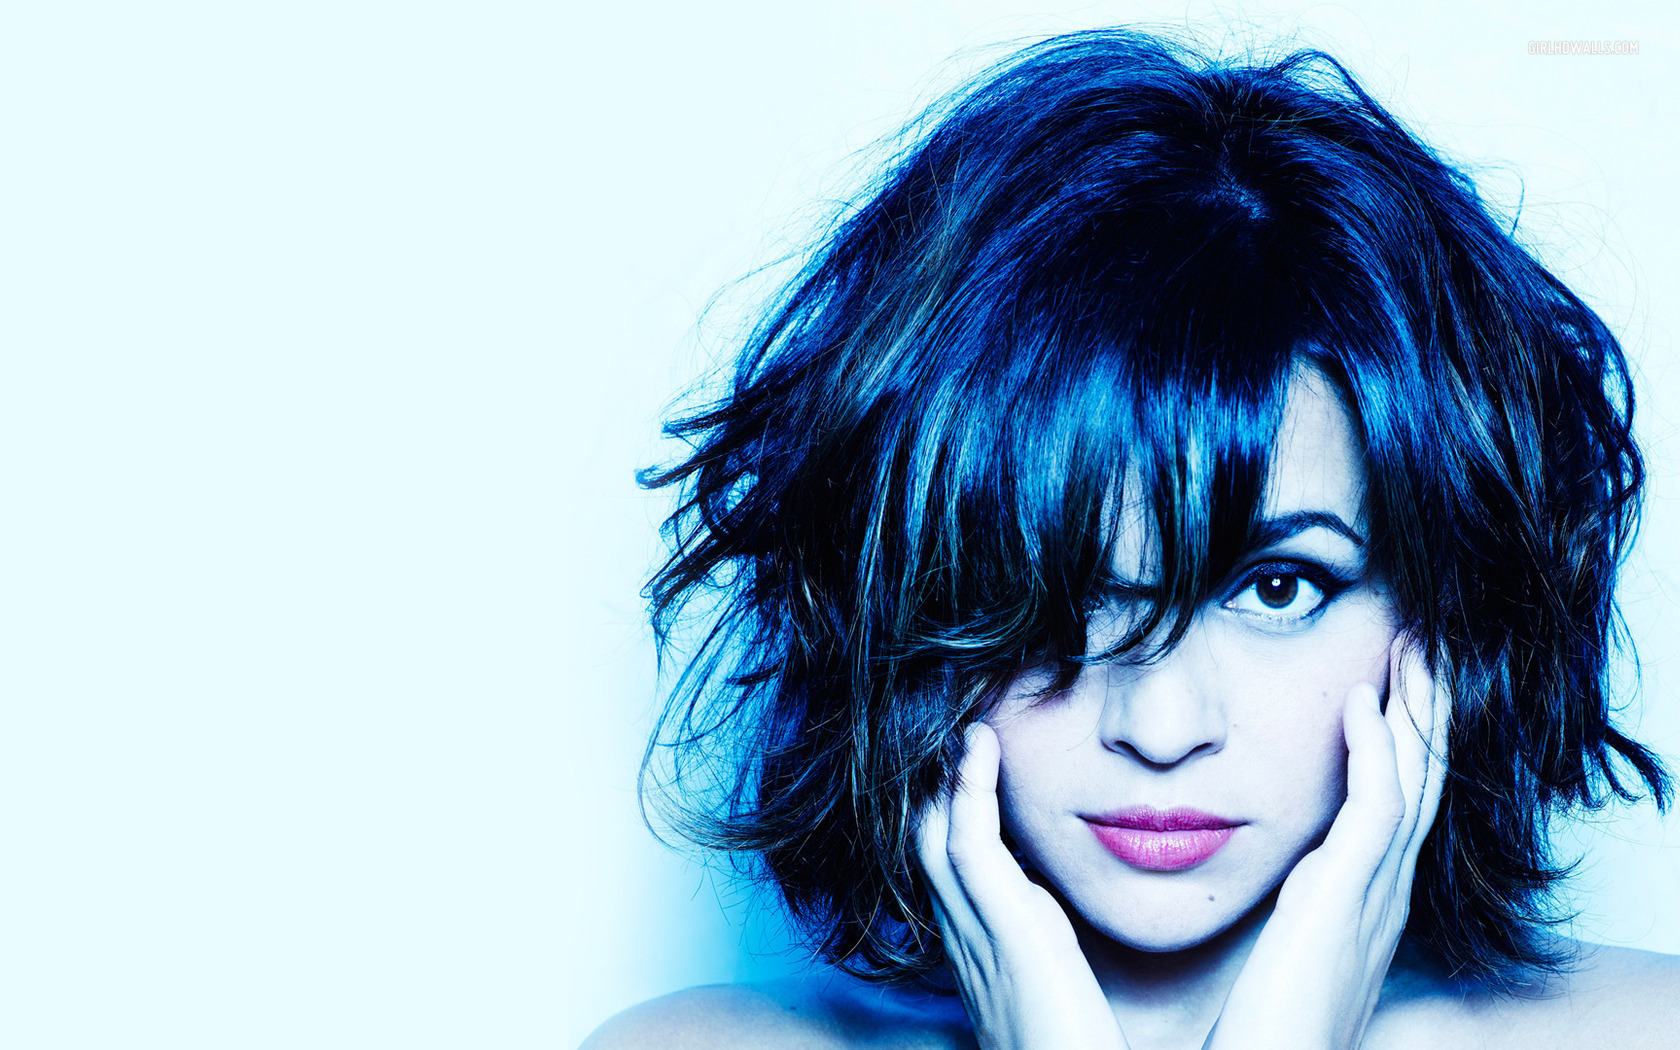 #23F 2003 Norah Jones arrasa en los Grammy, con 8 premios http://youtu.be/V7q8iICbuxg ...